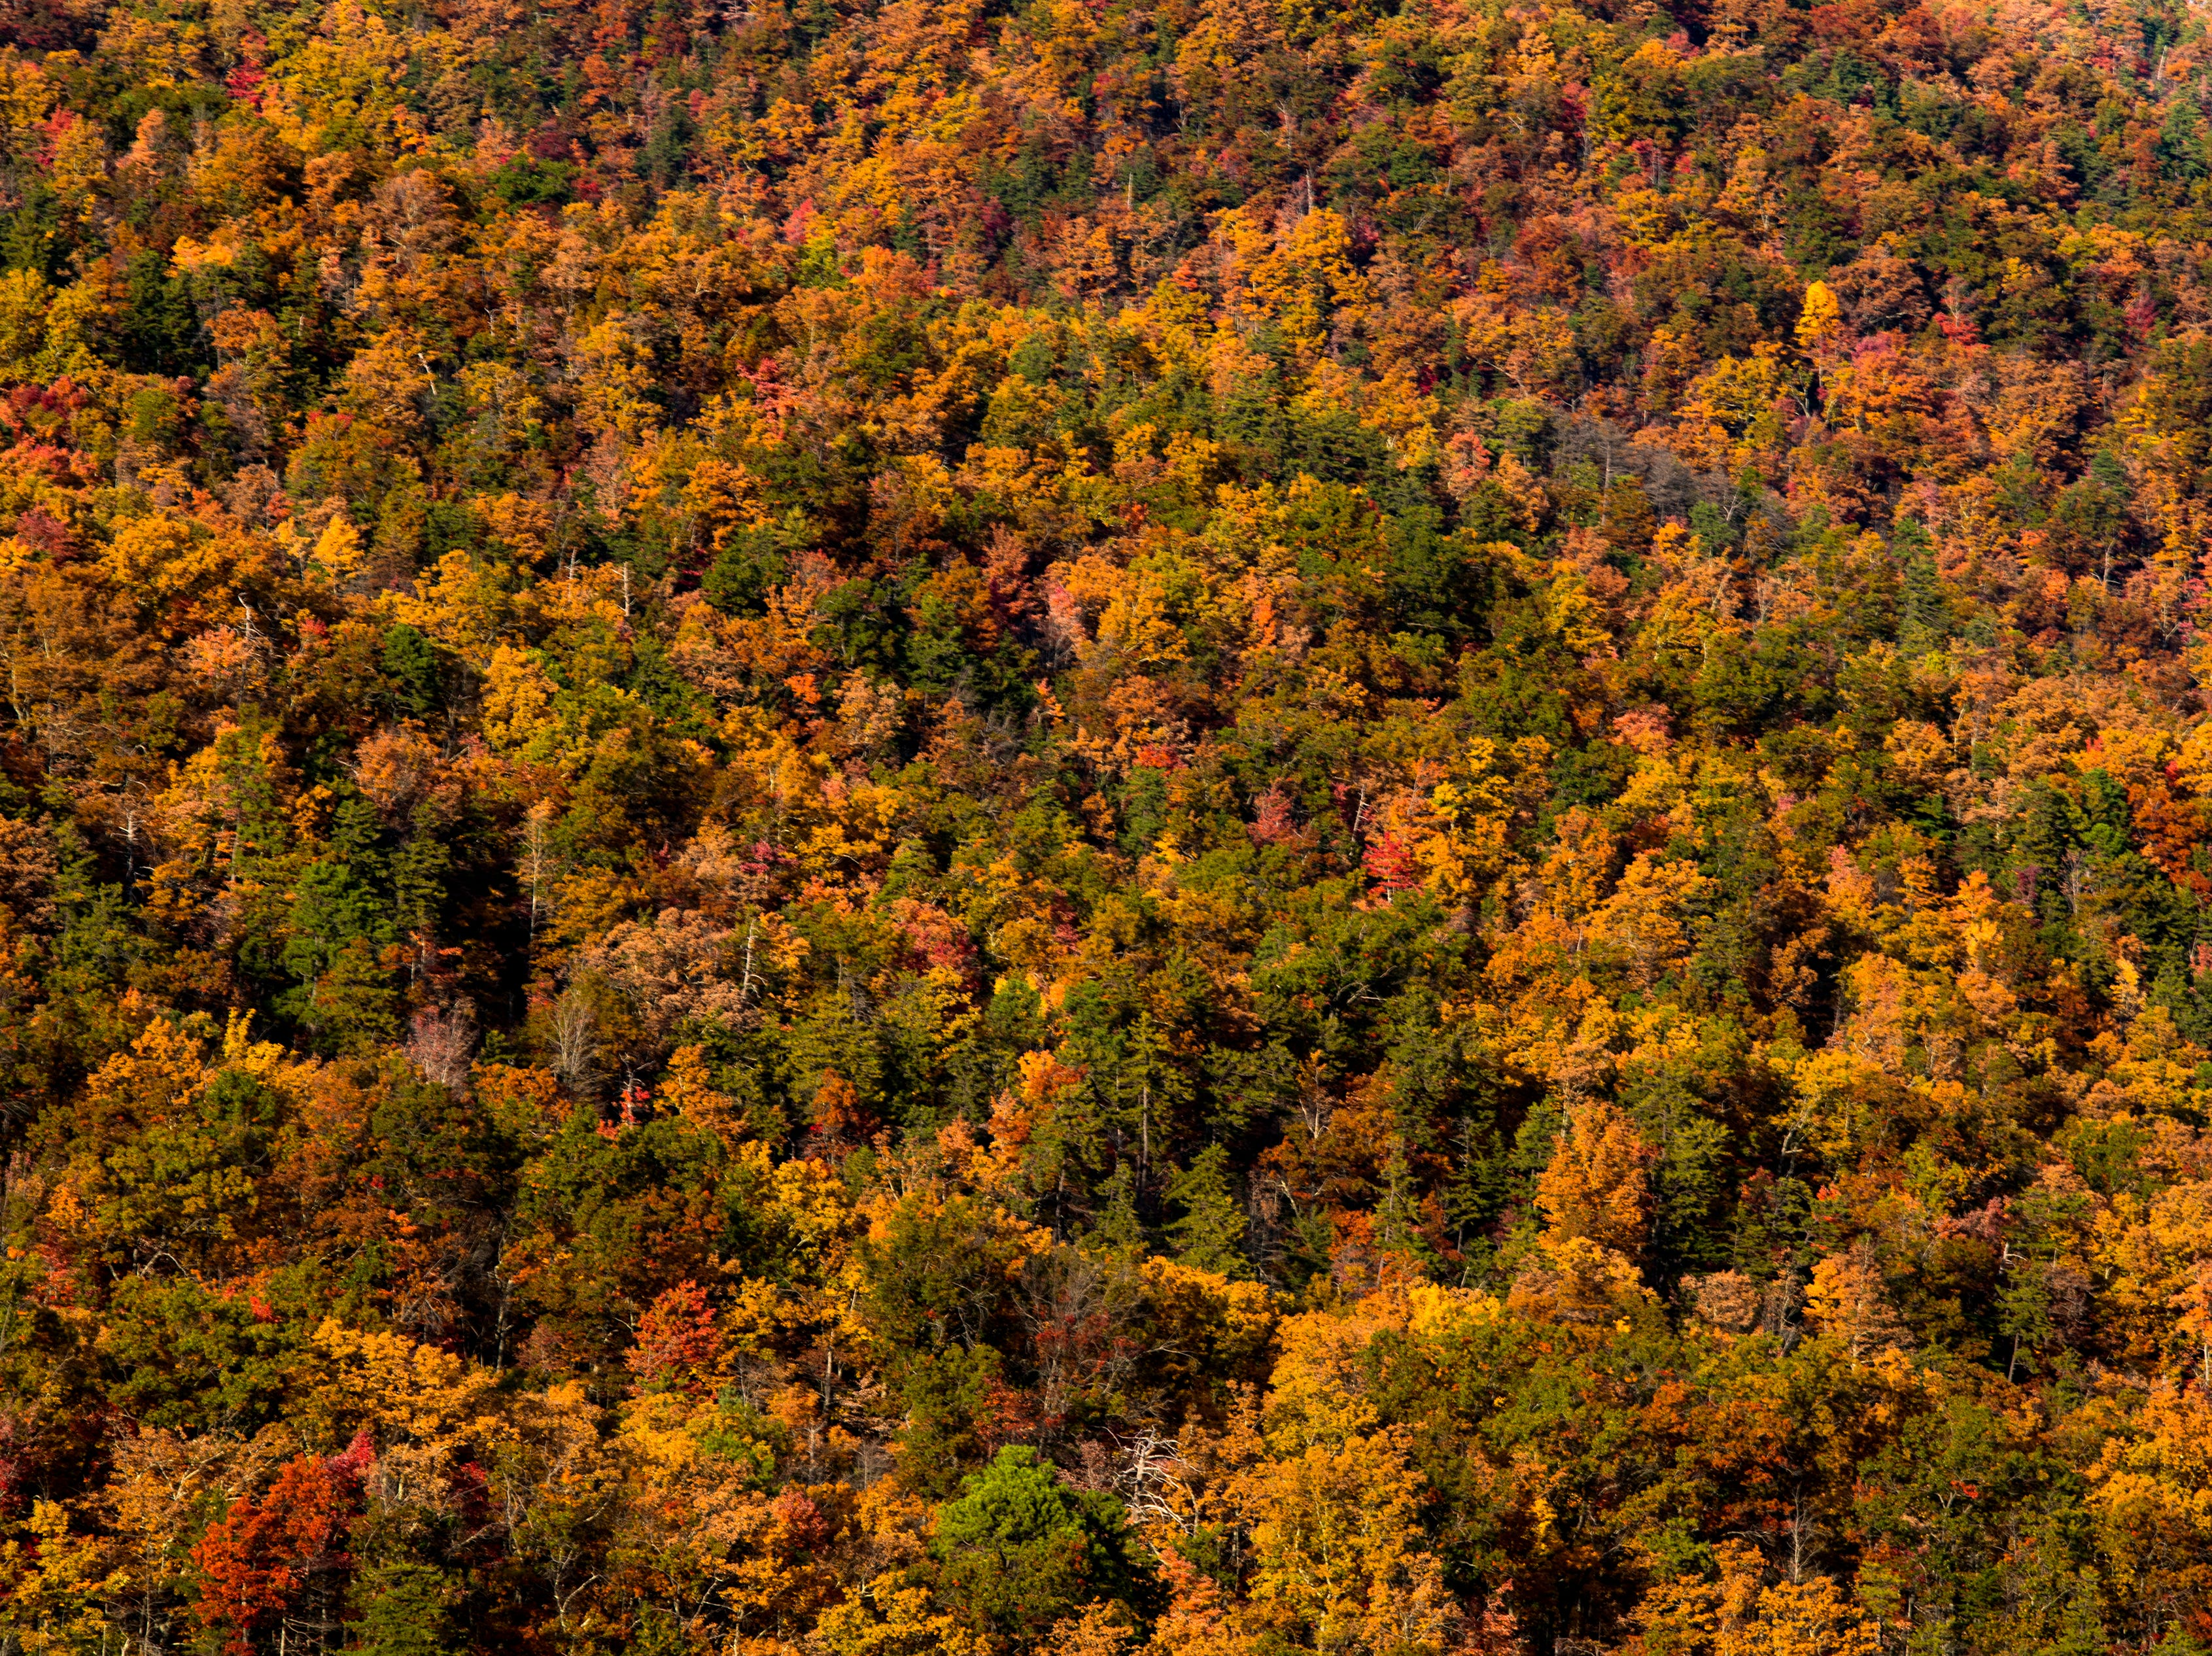 Fall foliage along Fighting Creek Gap Road in the Great Smoky Mountains National Park on Sunday, November 4, 2018.